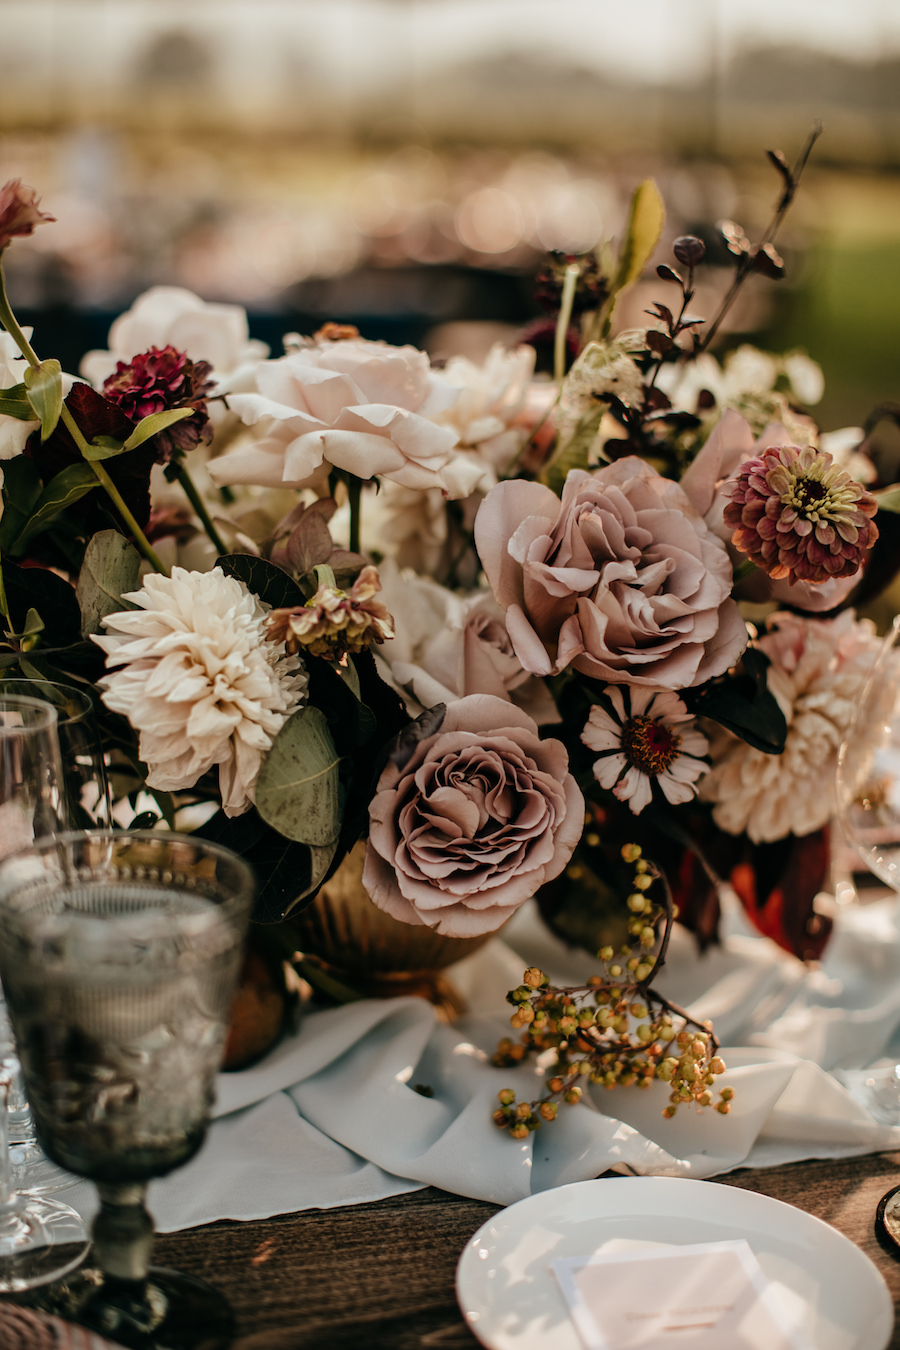 Jennifer and Jared's Chic Copper-Toned Wedding at Chateau St. Jean20.jpg